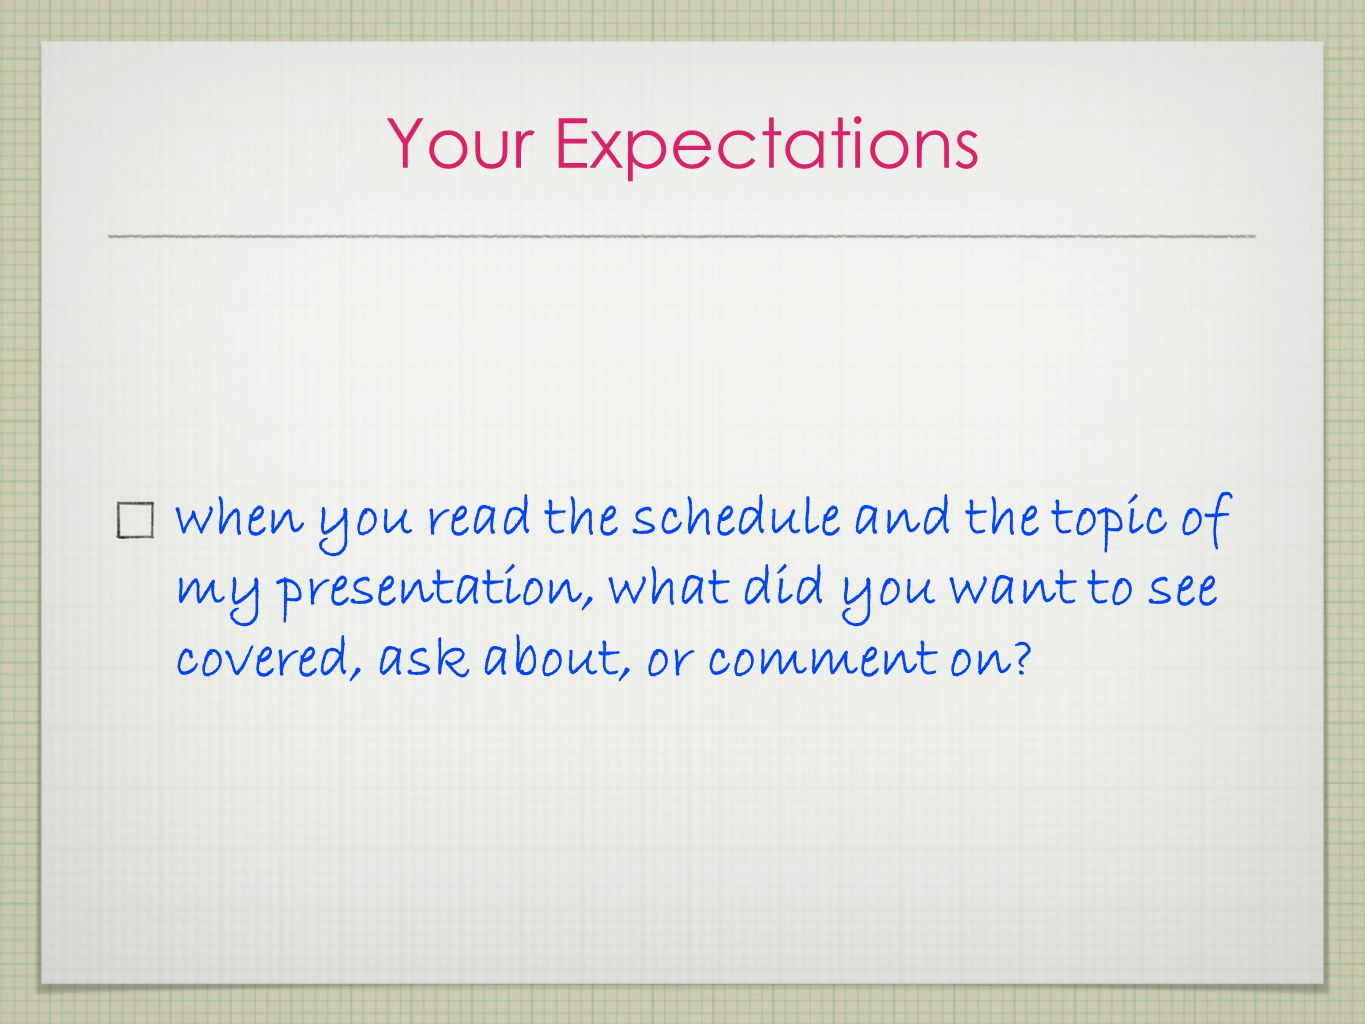 Your Expectations when you read the schedule and the topic of my presentation, what did you want to see covered, ask about, or comment on